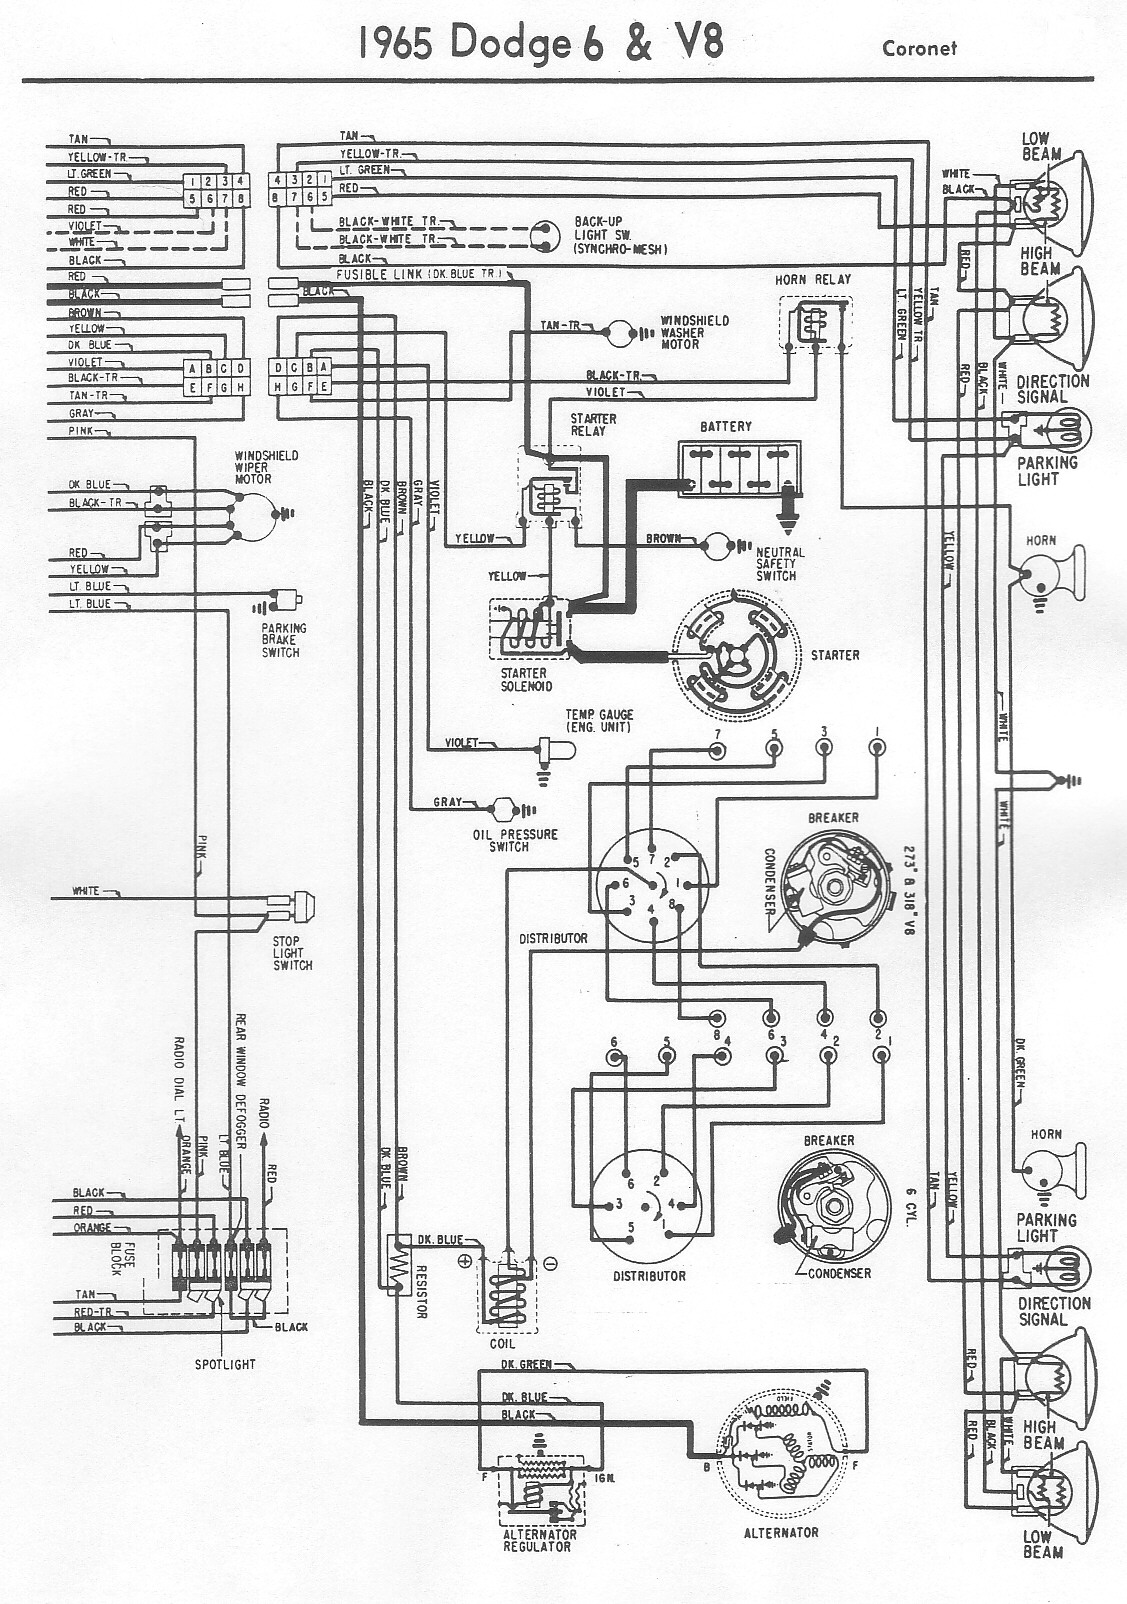 1965 dodge coronet wiring diagram